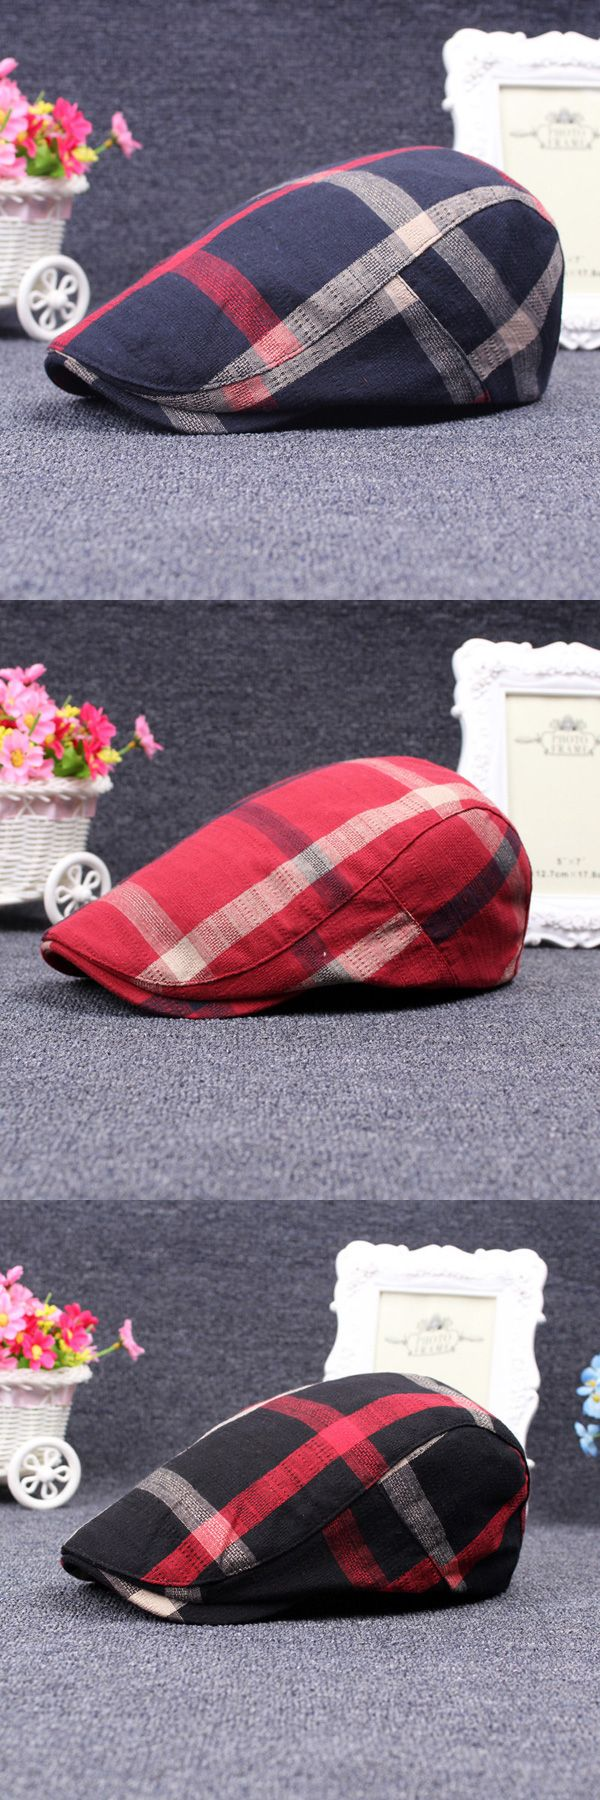 Men Women Plaid Grid Berets Caps / Casual Cotton Flat Hats http://www.99wtf.net/category/young-style/urban-style/